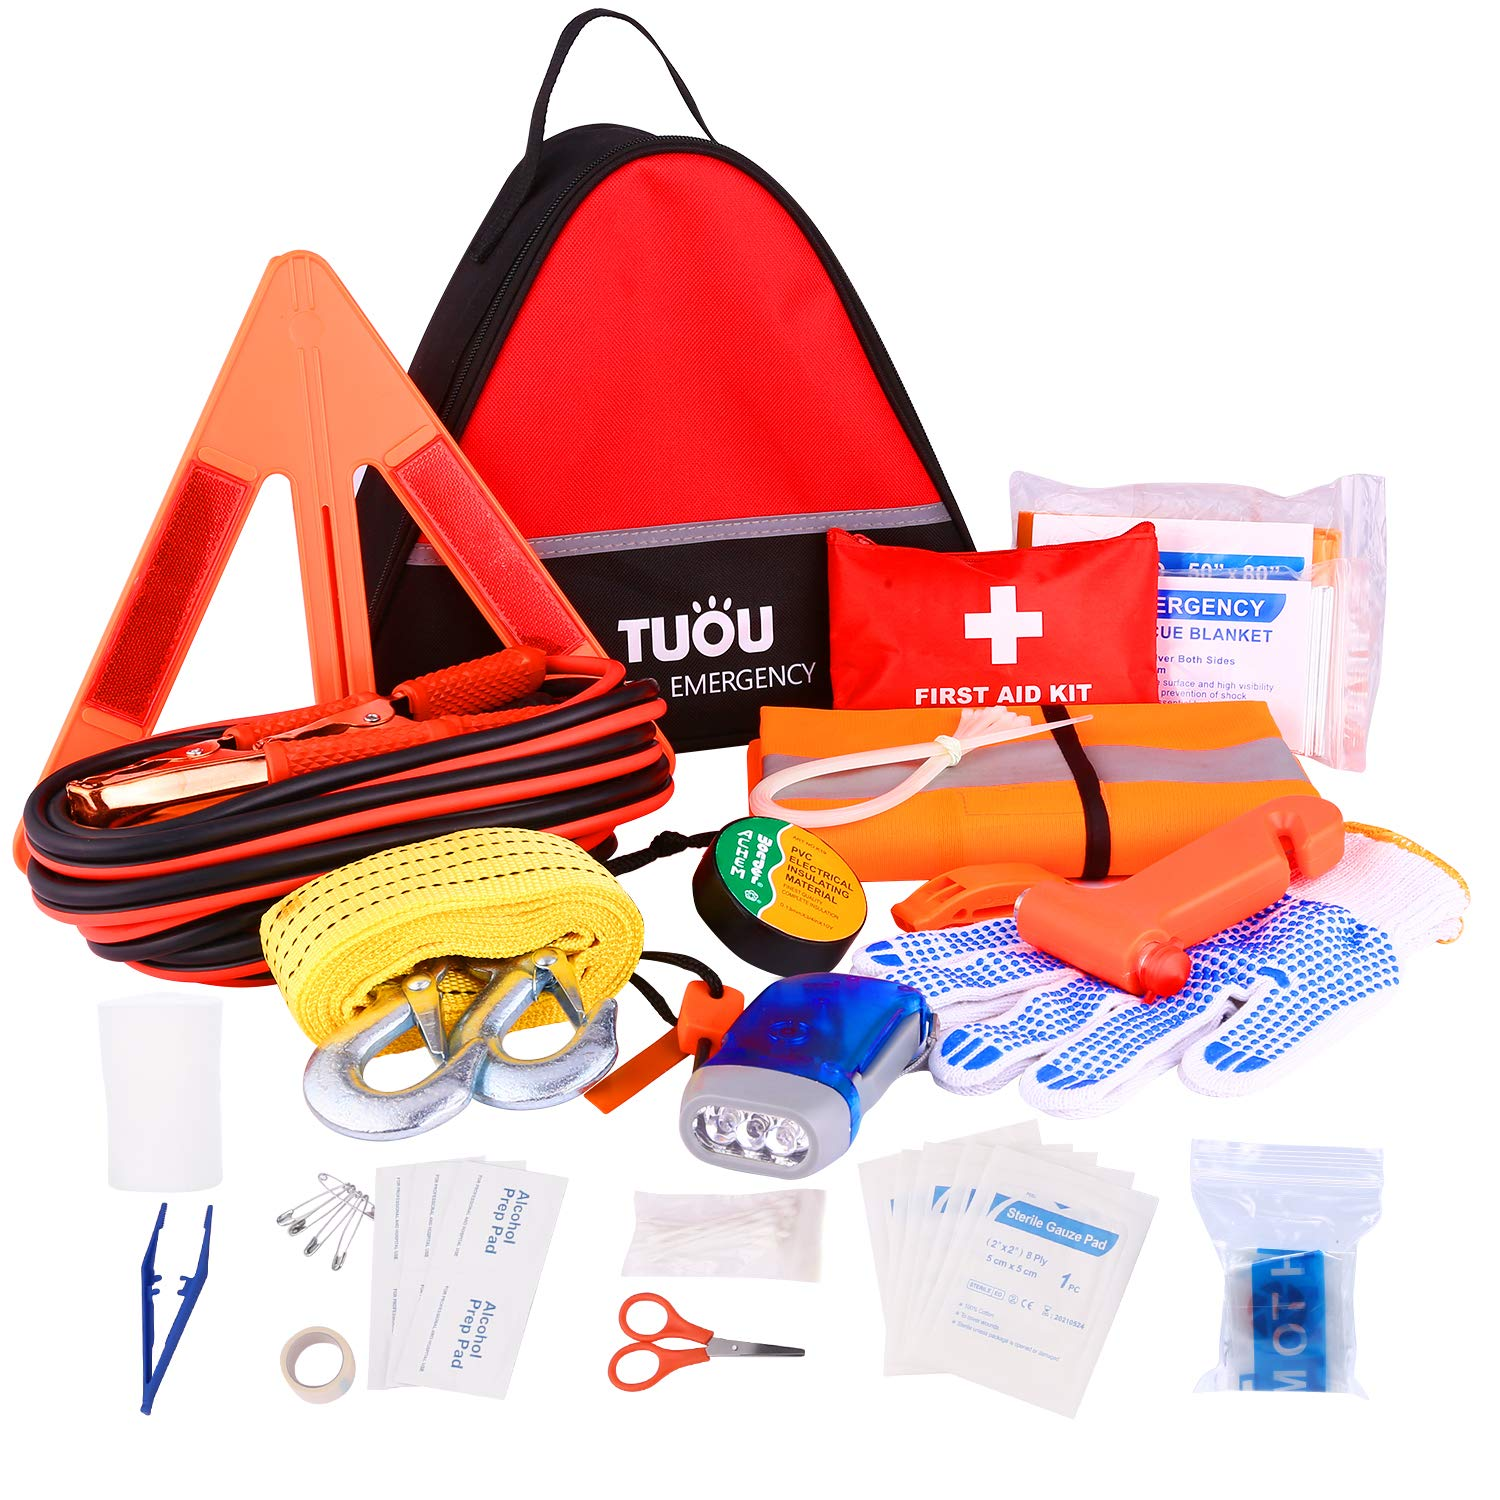 TUOU Auto Emergency Kit for Cars and Trucks First Aid Kit, All-in-One Triangle Carry Bag Roadside Assistance, Contains 16.4 Feet Jumper Cable, Reflective Triangle, Tow Rope and Vehicle Survival Tools